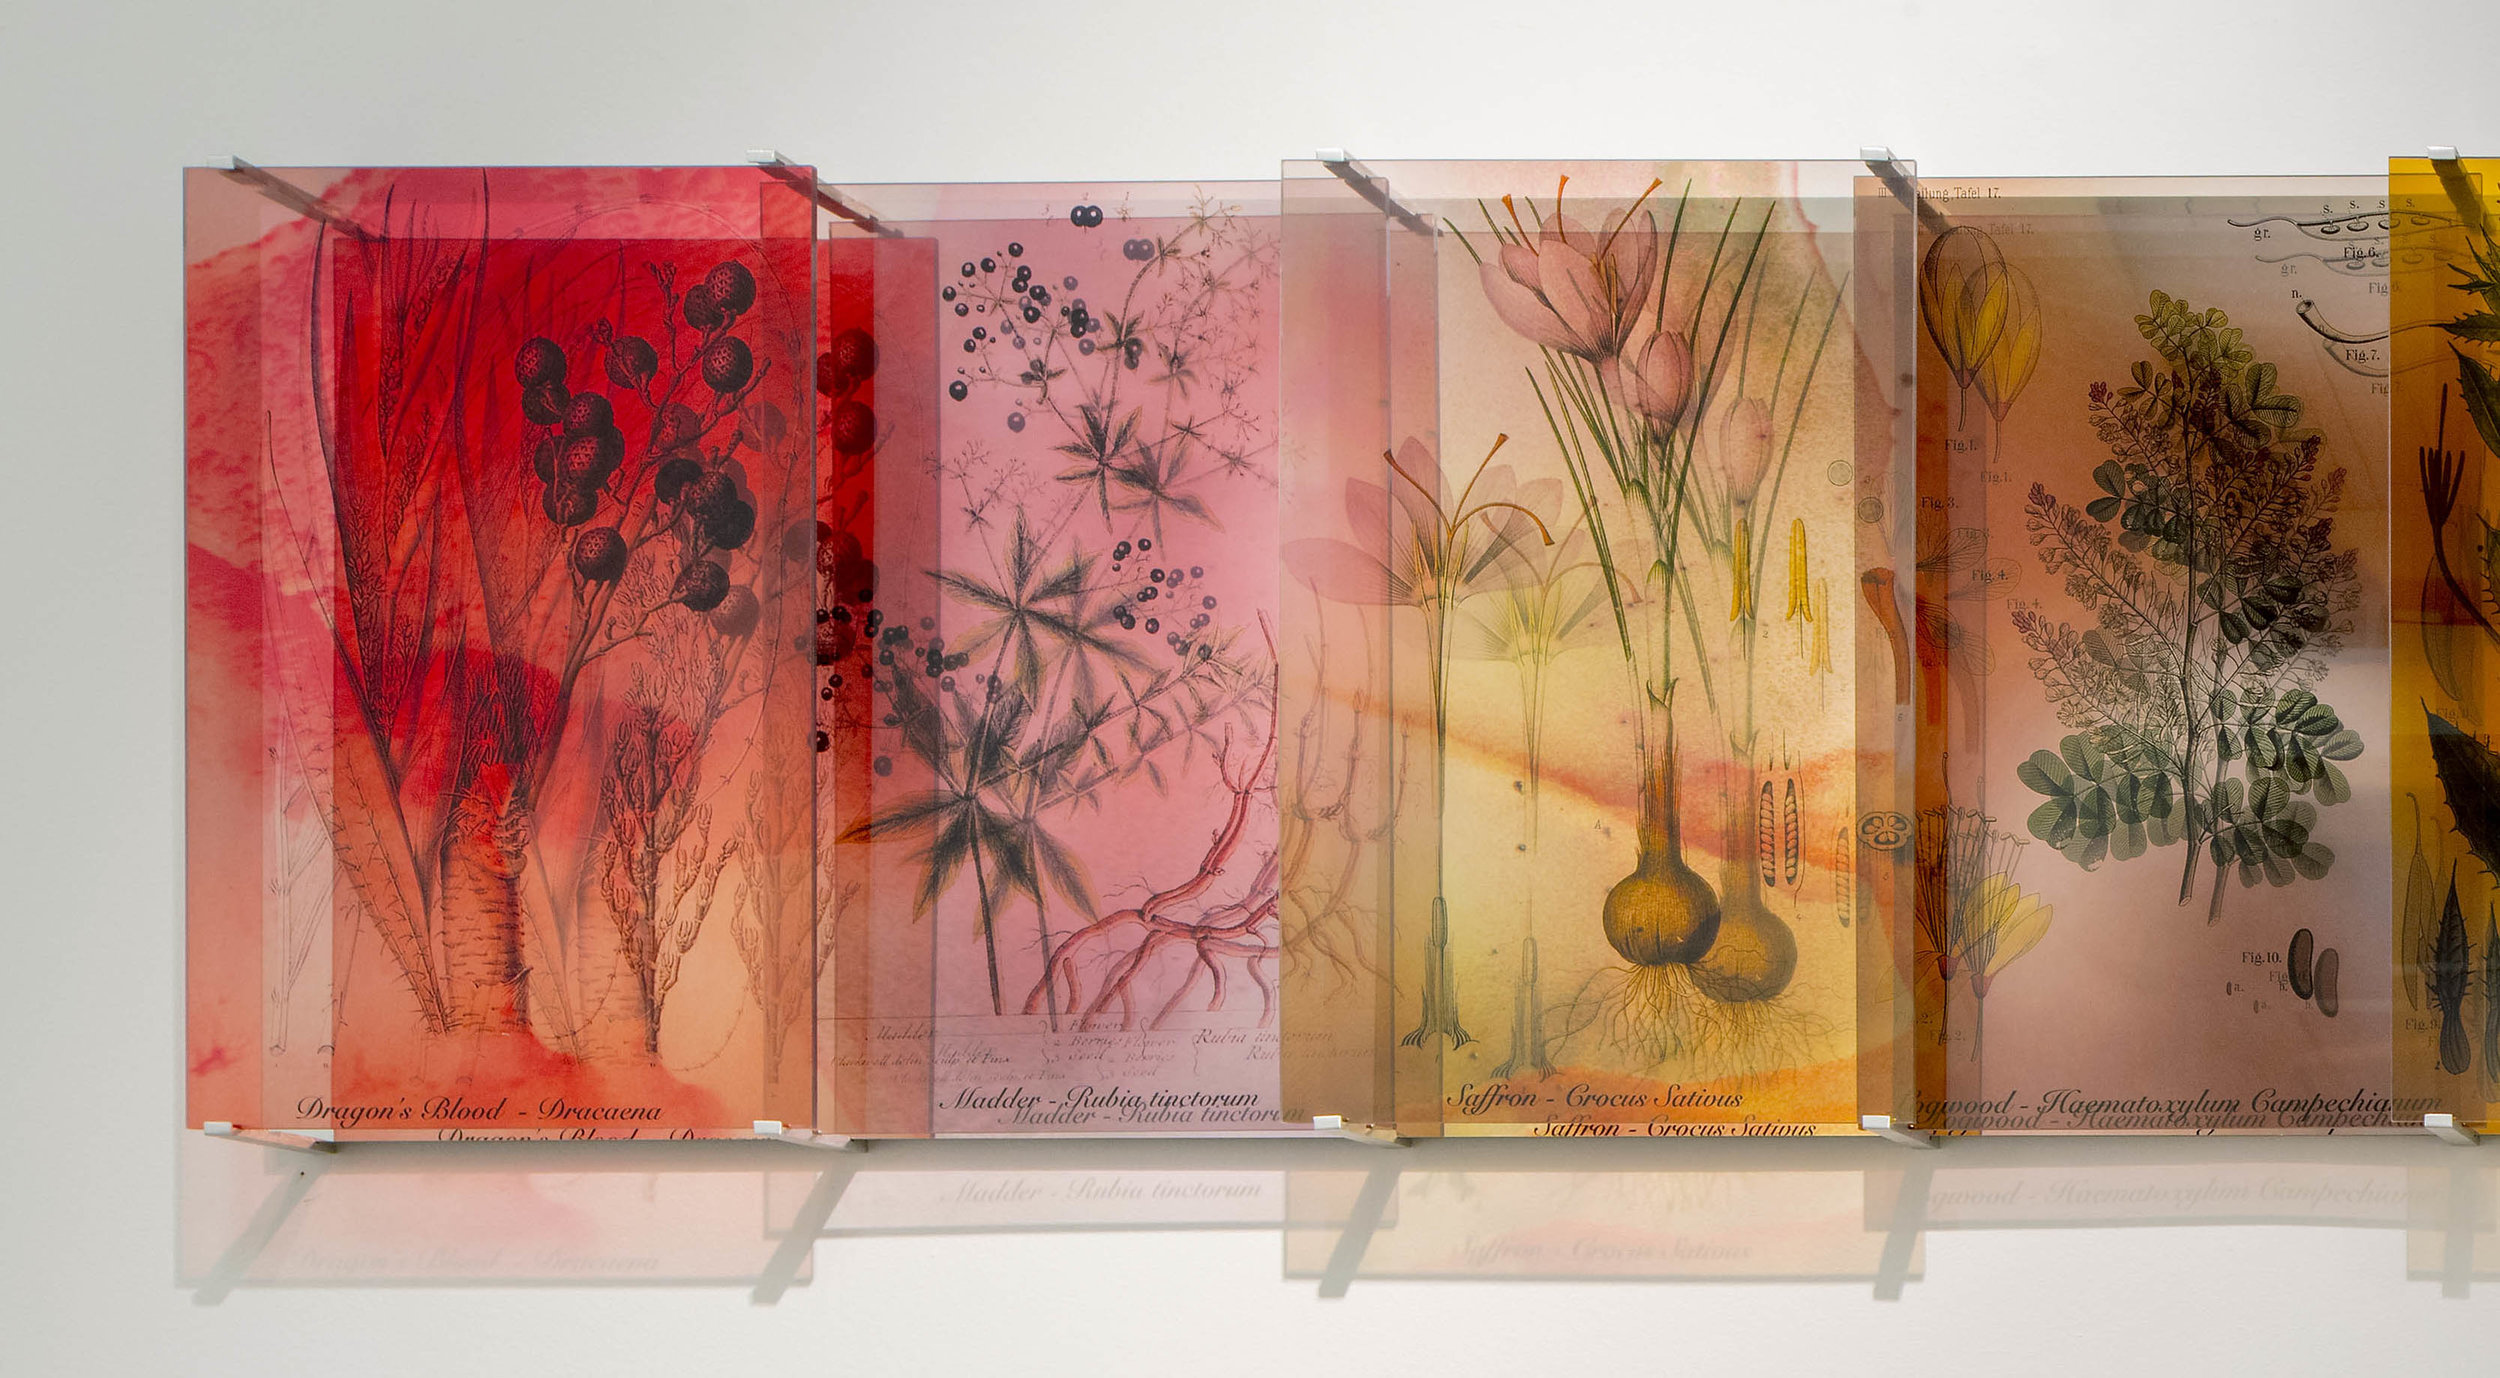 JANET LAURENCE   Plants Bleed Lakes,  panels 1 - 4 2018 Dibond mirror, duraclear mounted on acrylic 60 x 144 cm Part of a series of 3